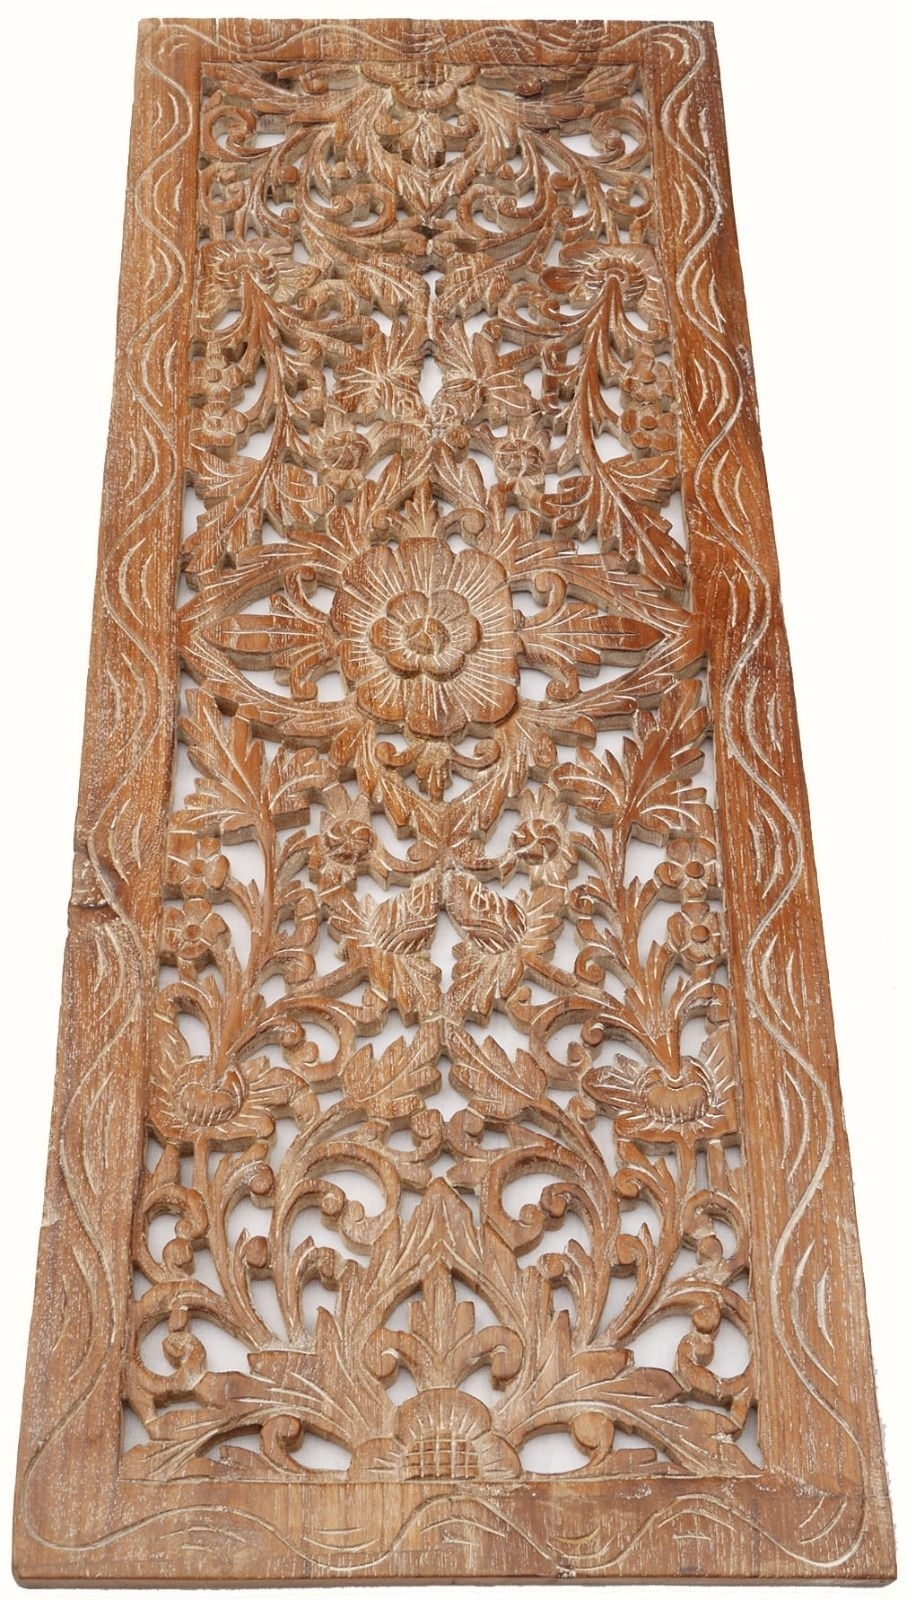 Asian Carved Wood Wall Decor Panel. Floral Wood Wall Art. White Wash throughout Carved Wood Wall Art (Image 3 of 20)